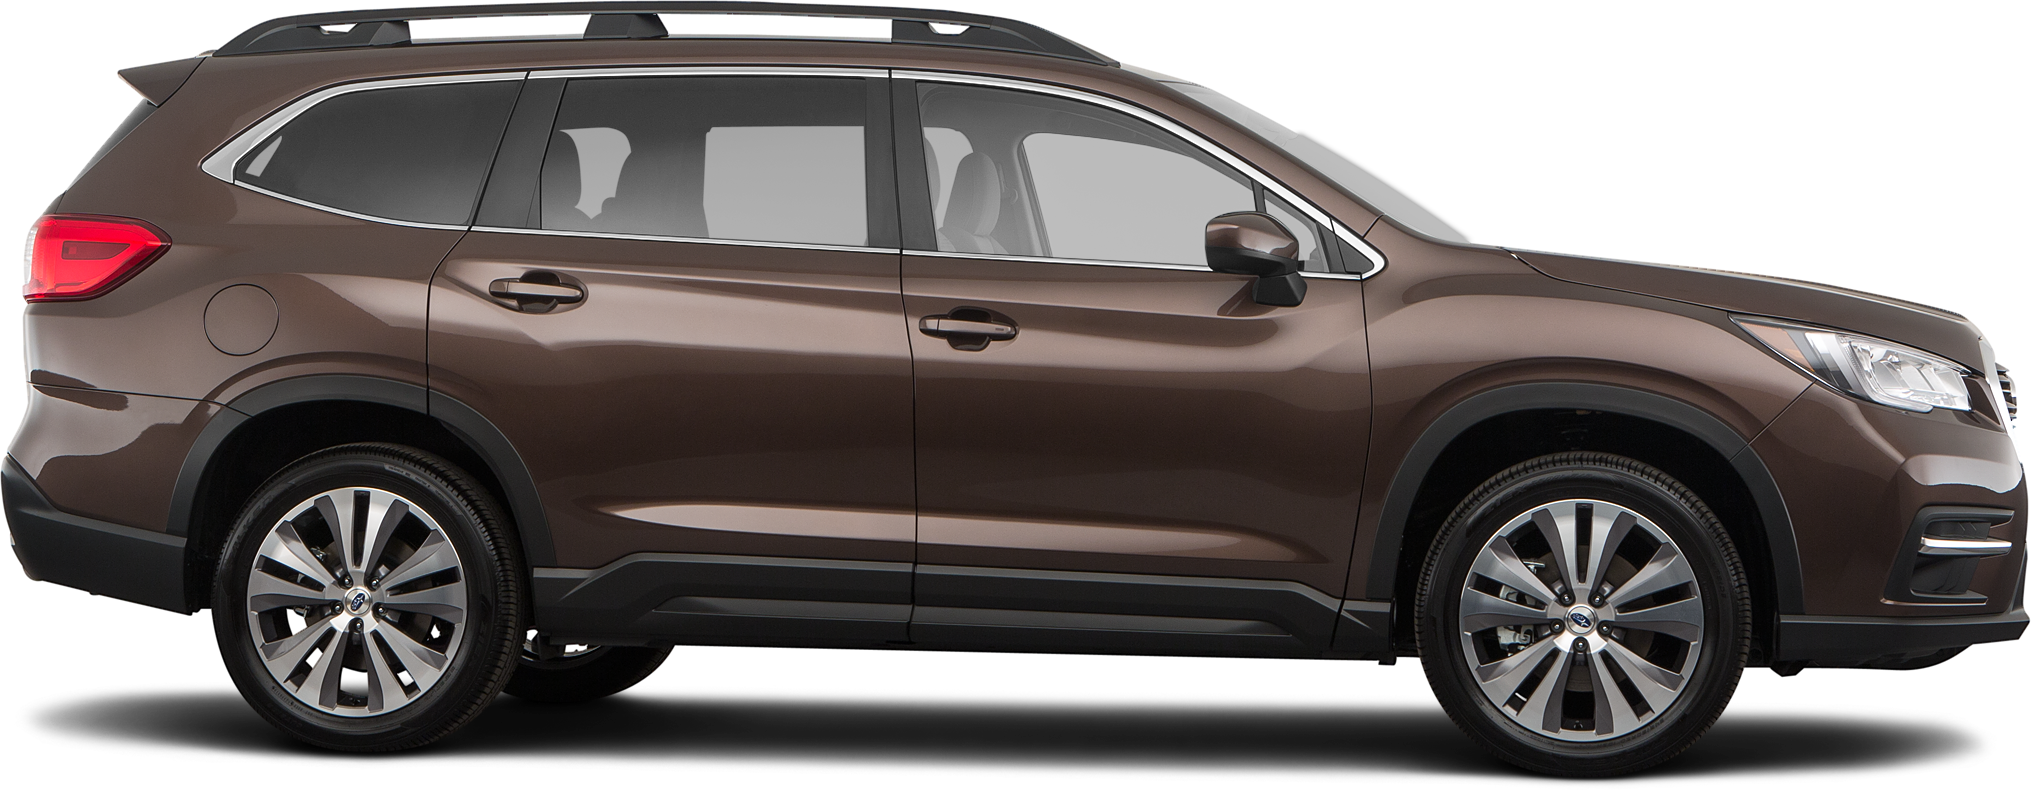 http://images.dealer.com/ddc/vehicles/2020/Subaru/Ascent/SUV/trim_Premium_b7d779/perspective/side-right/2020_76.png